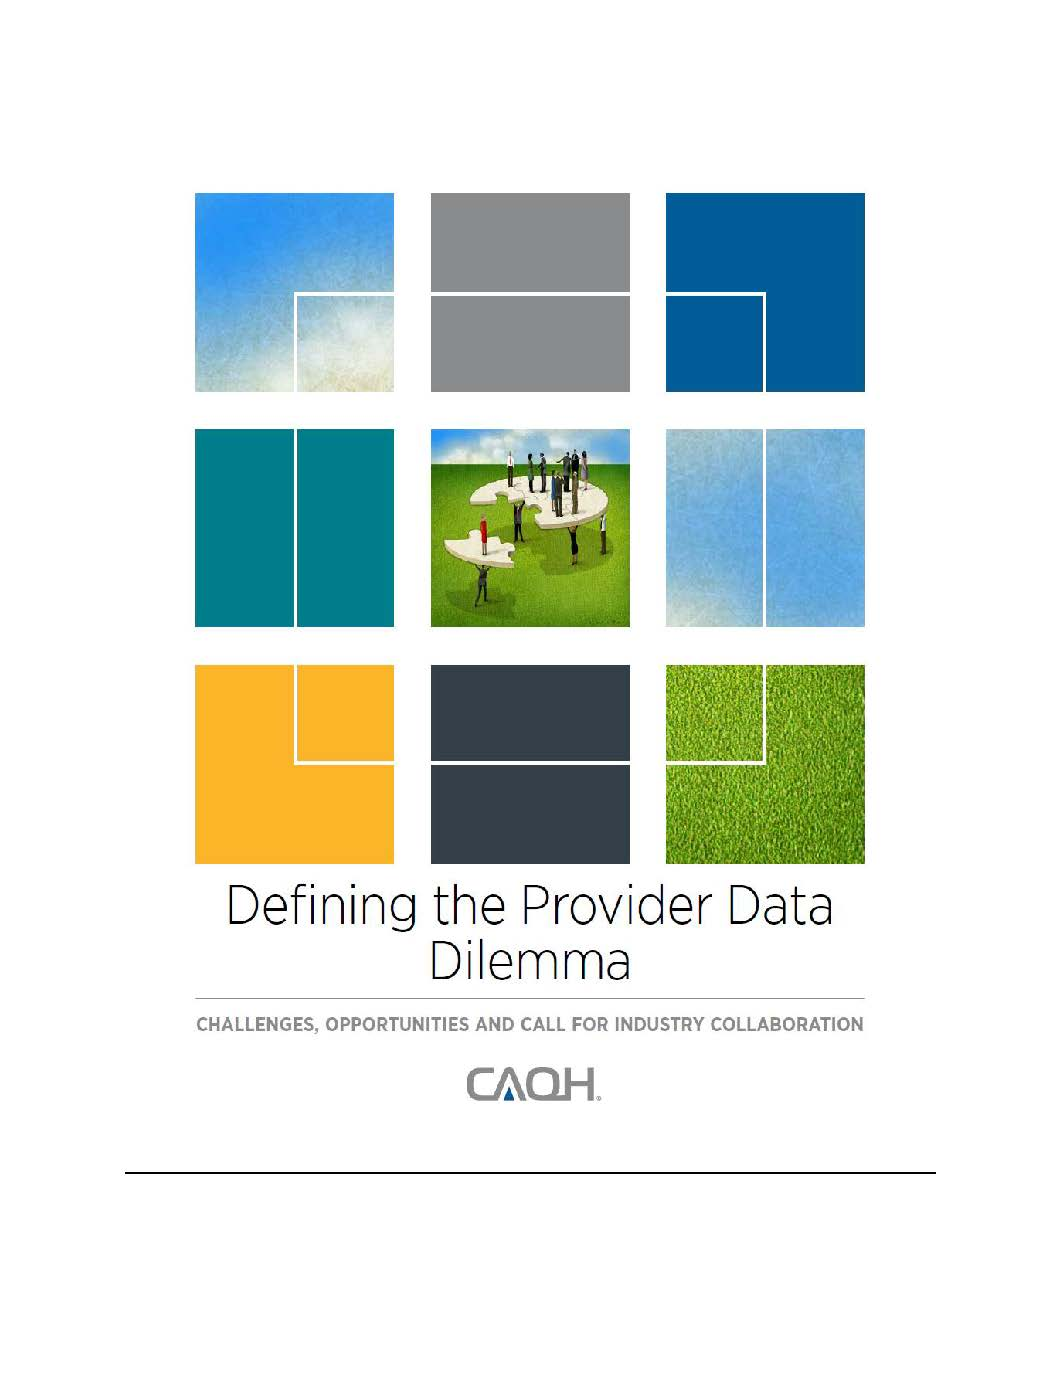 https://www.caqh.org/sites/default/files/explorations/defining-provider-data-white-paper.pdf